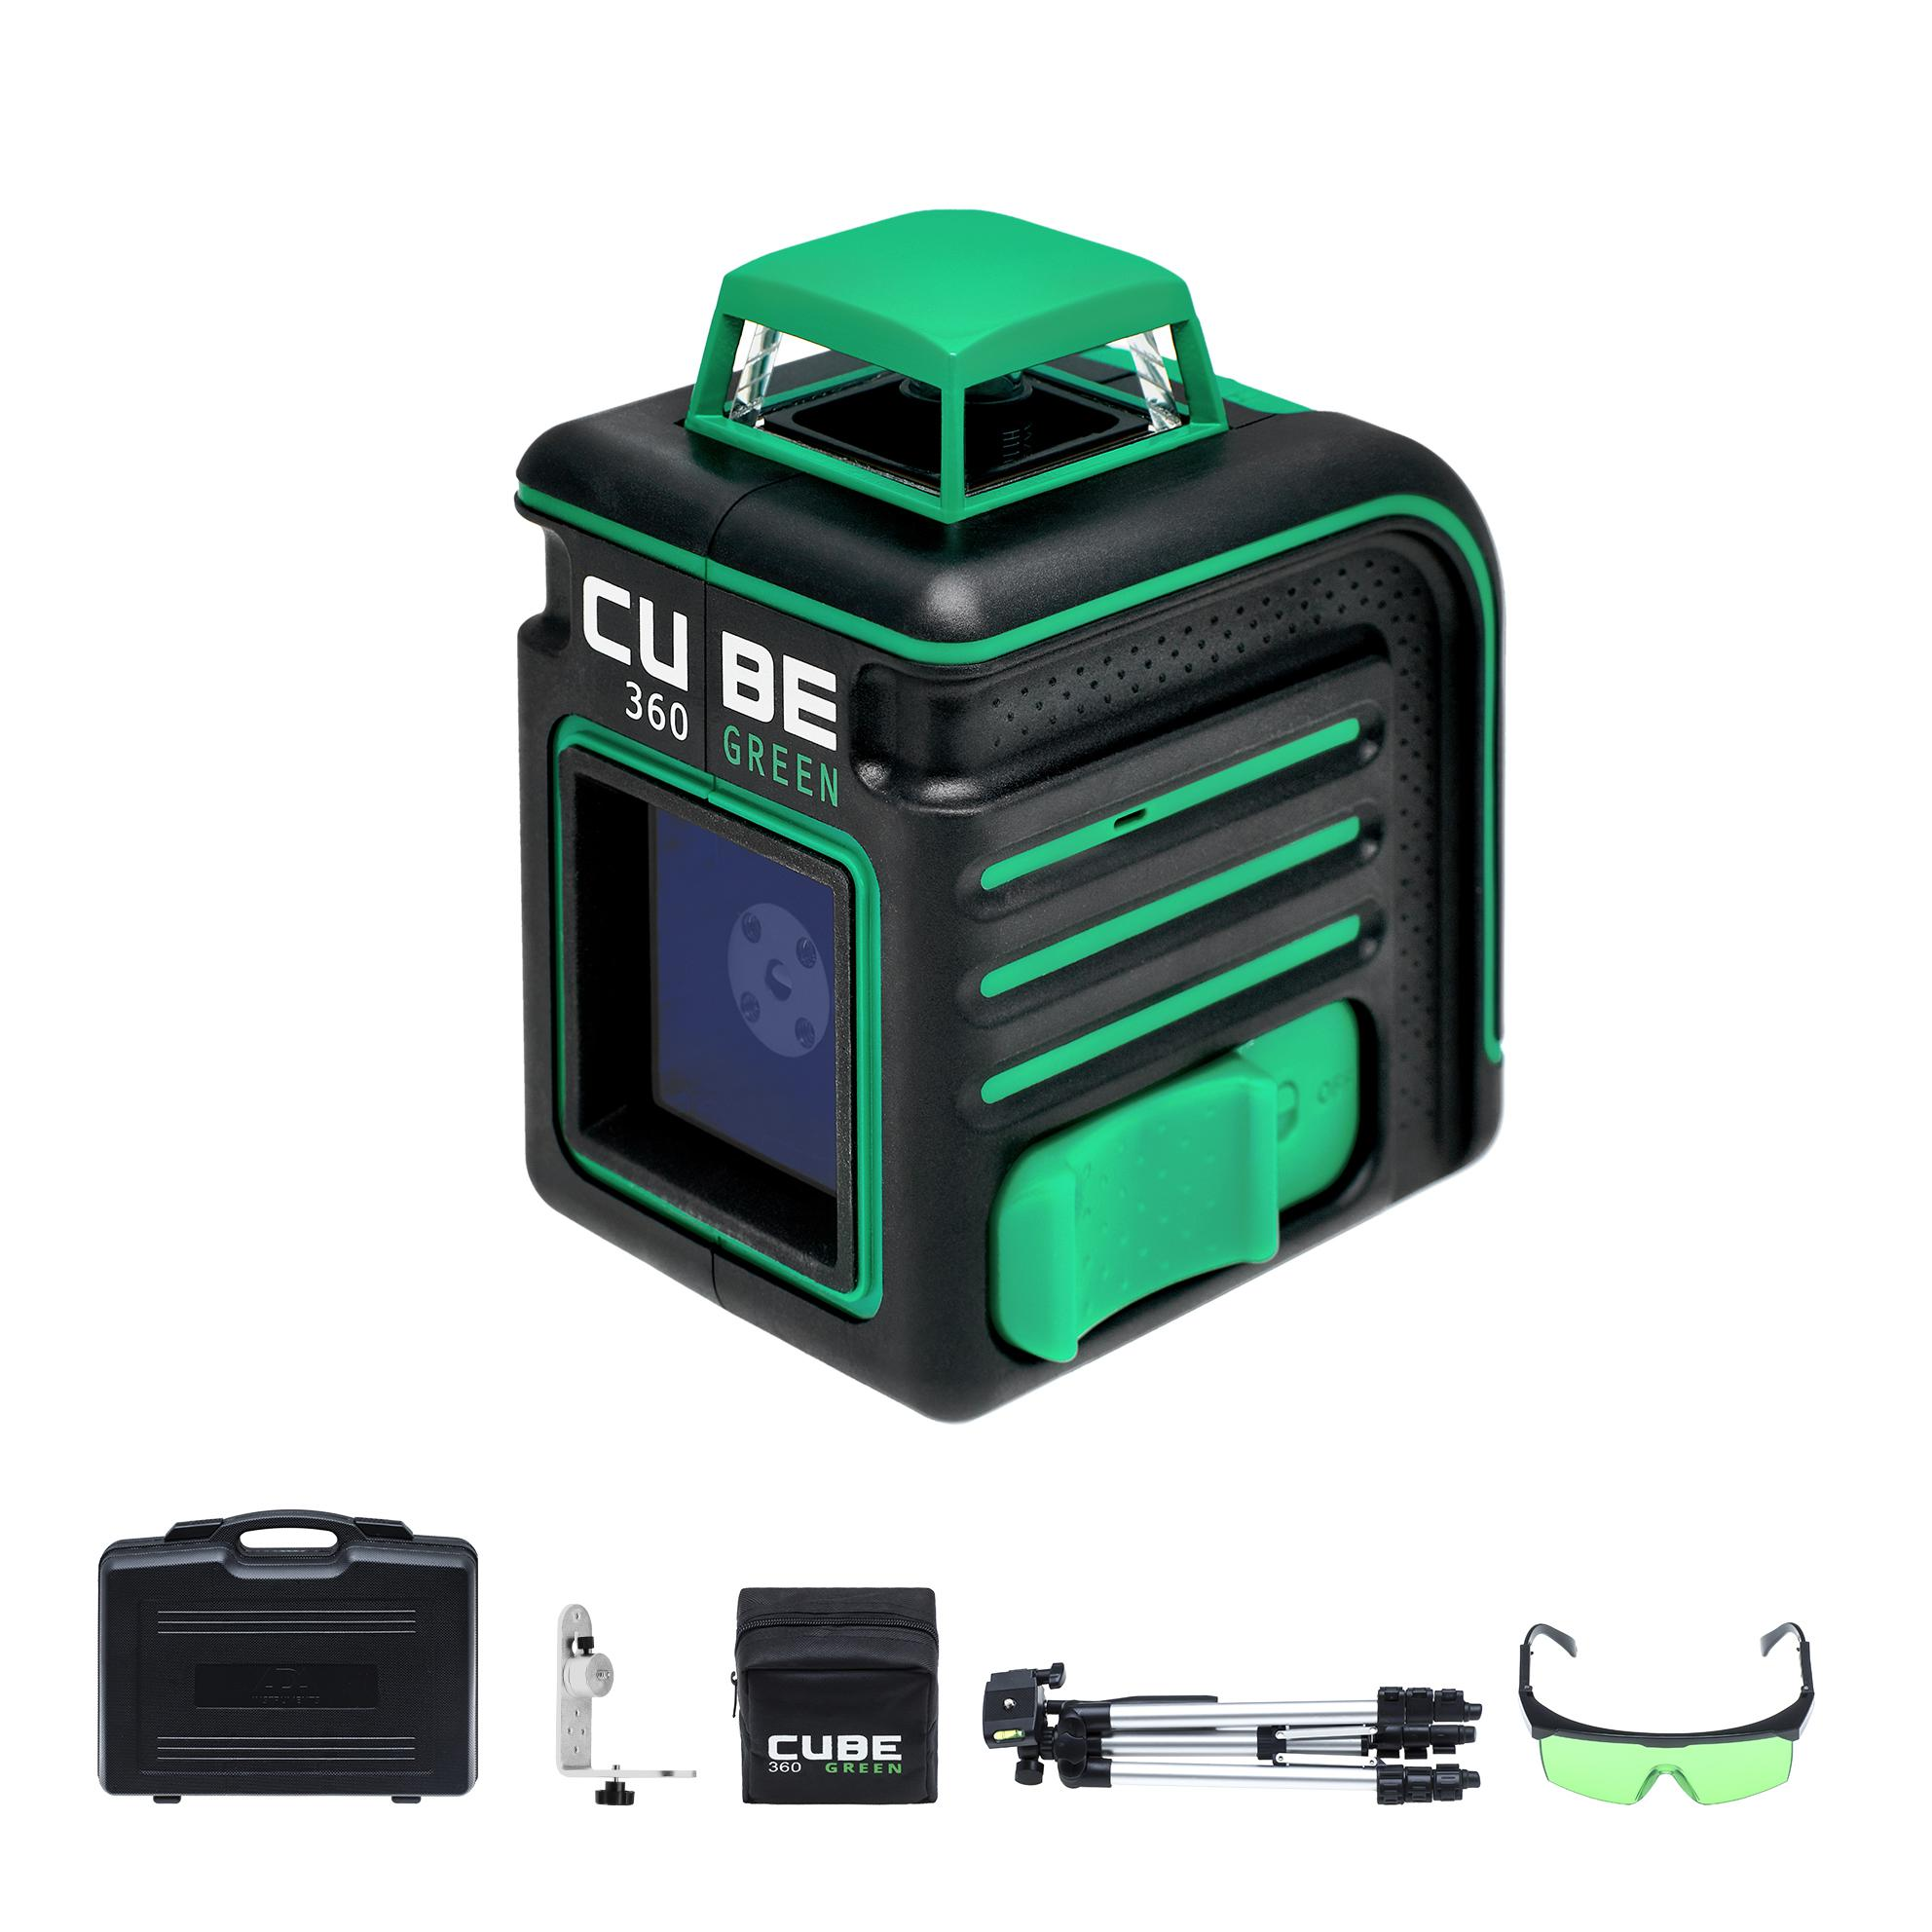 Уровень Ada Cube 360 green ultimate edition уровень ada cube 2 360 green ultimate edition